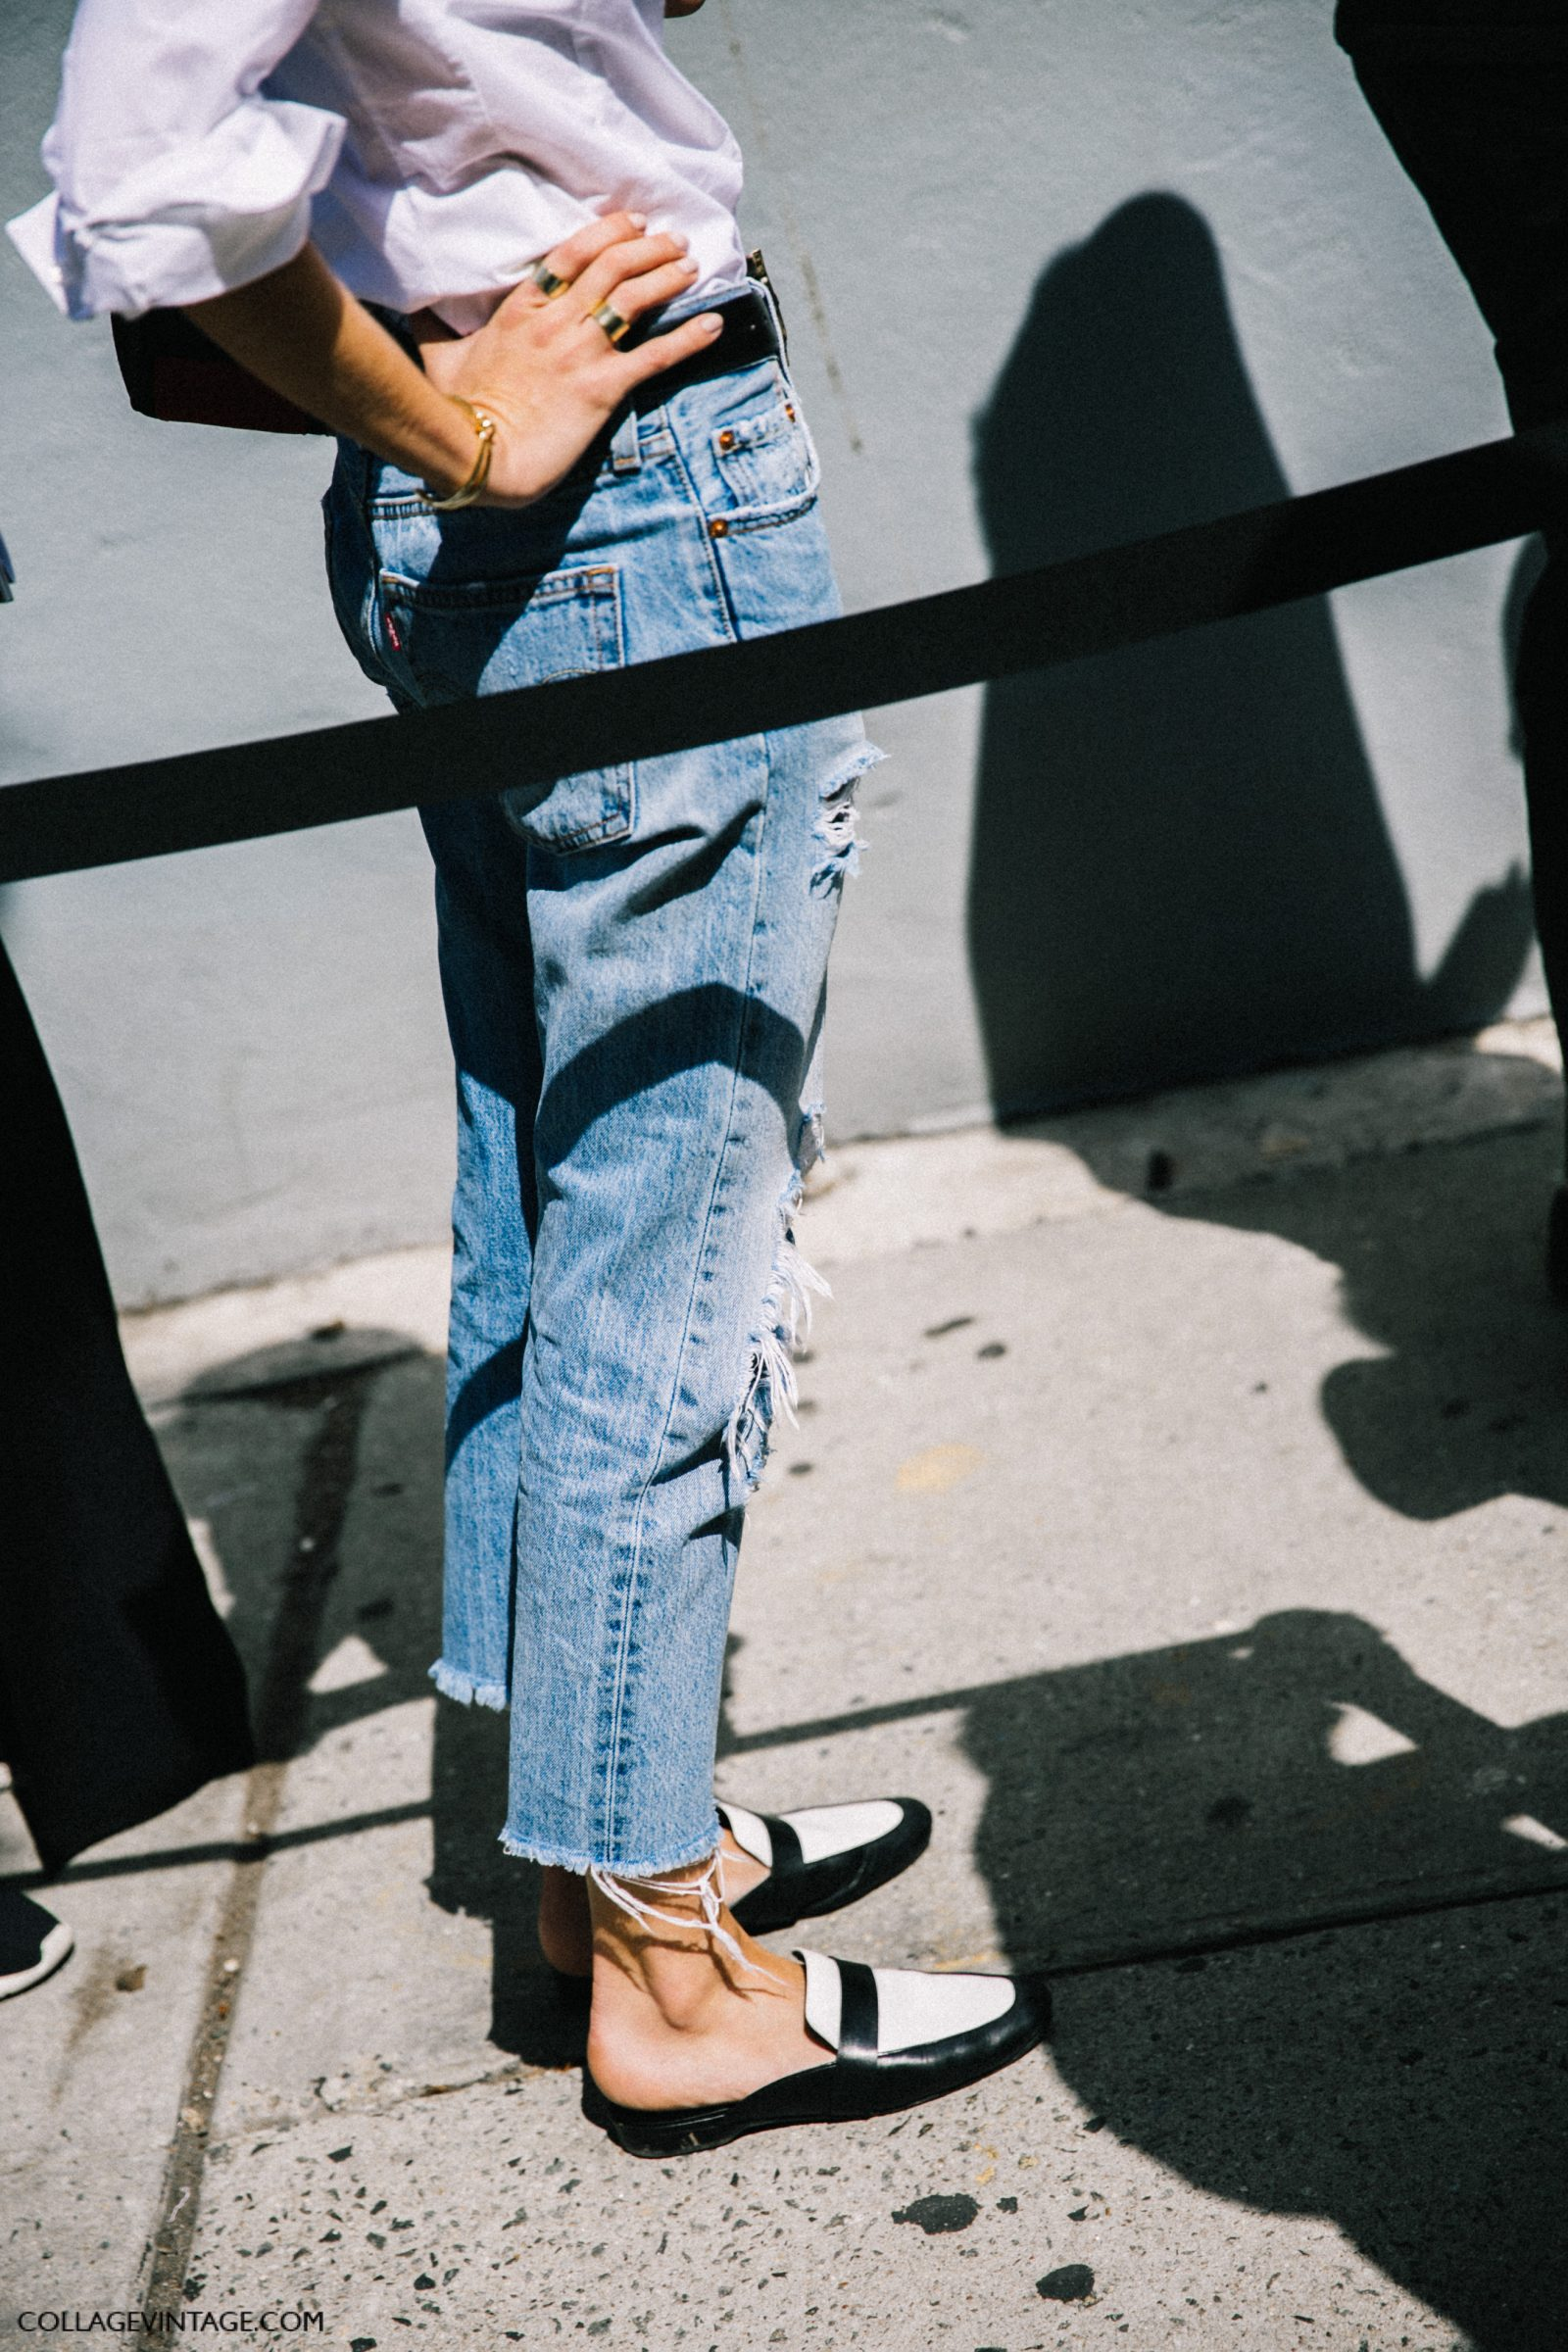 nyfw-new_york_fashion_week_ss17-street_style-outfits-collage_vintage-vintage-phillip_lim-the-row-proenza_schouler-rossie_aussolin-232